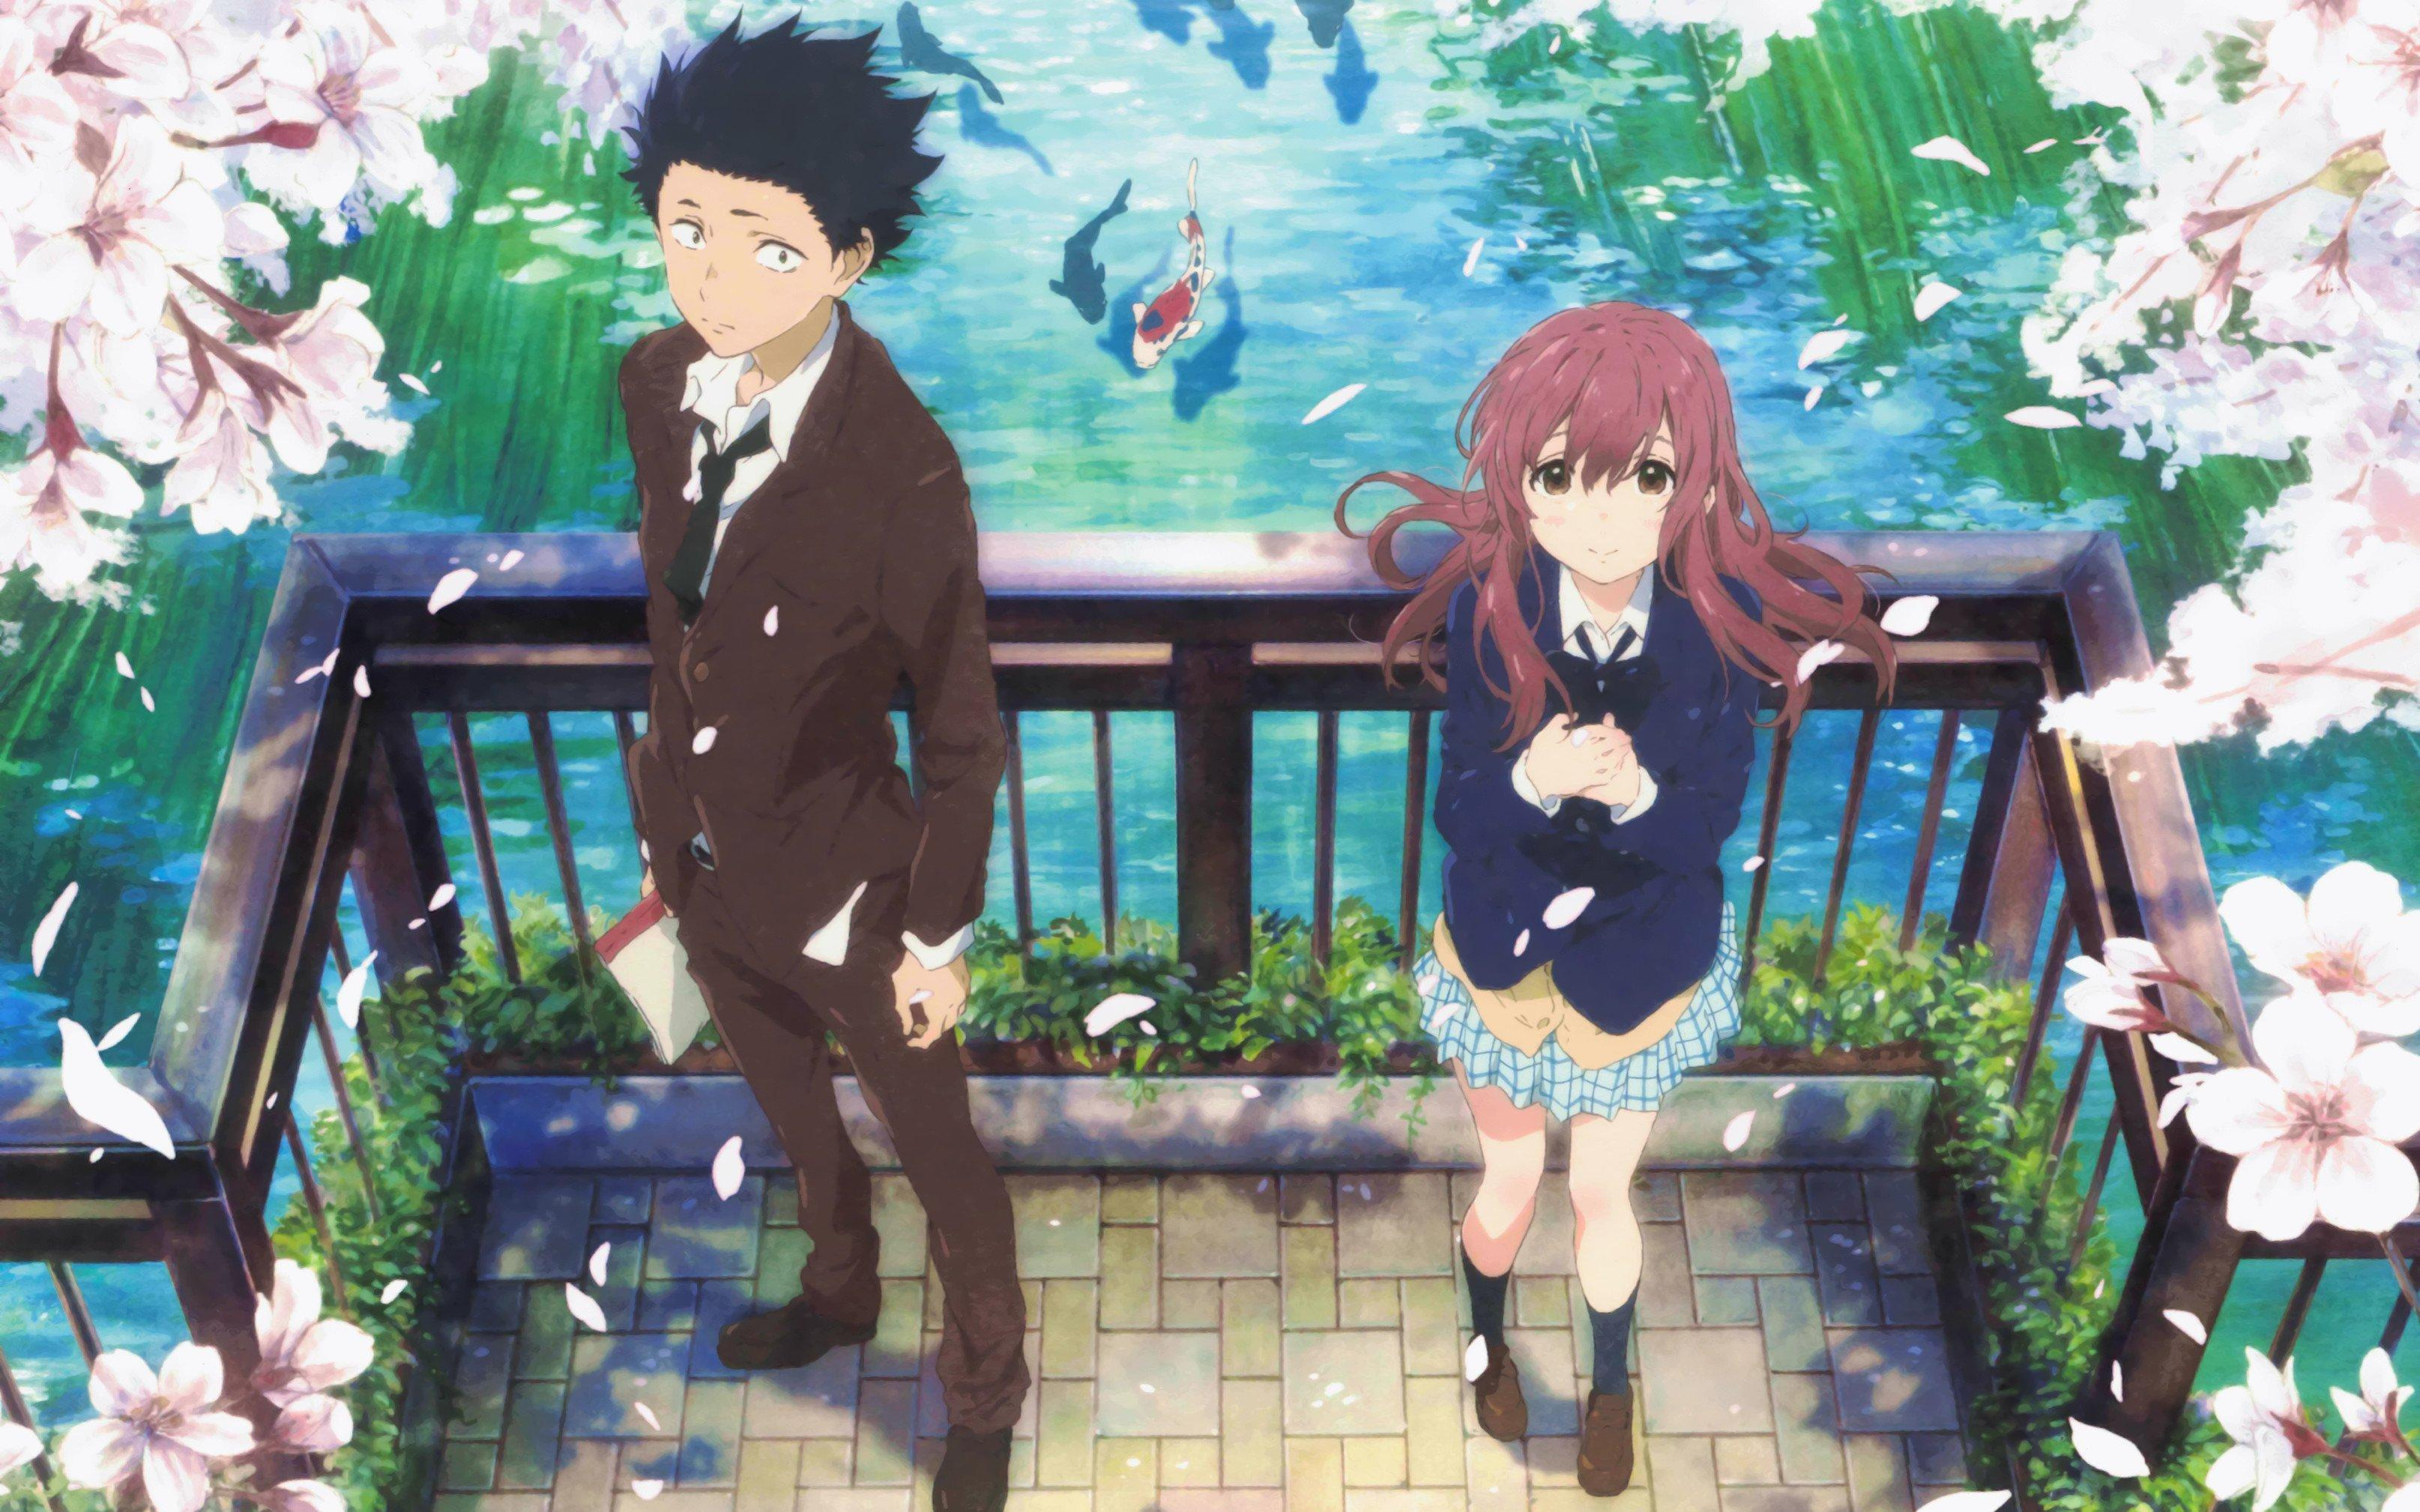 romantic anime movie like To Your Eternity, A Silent Voice